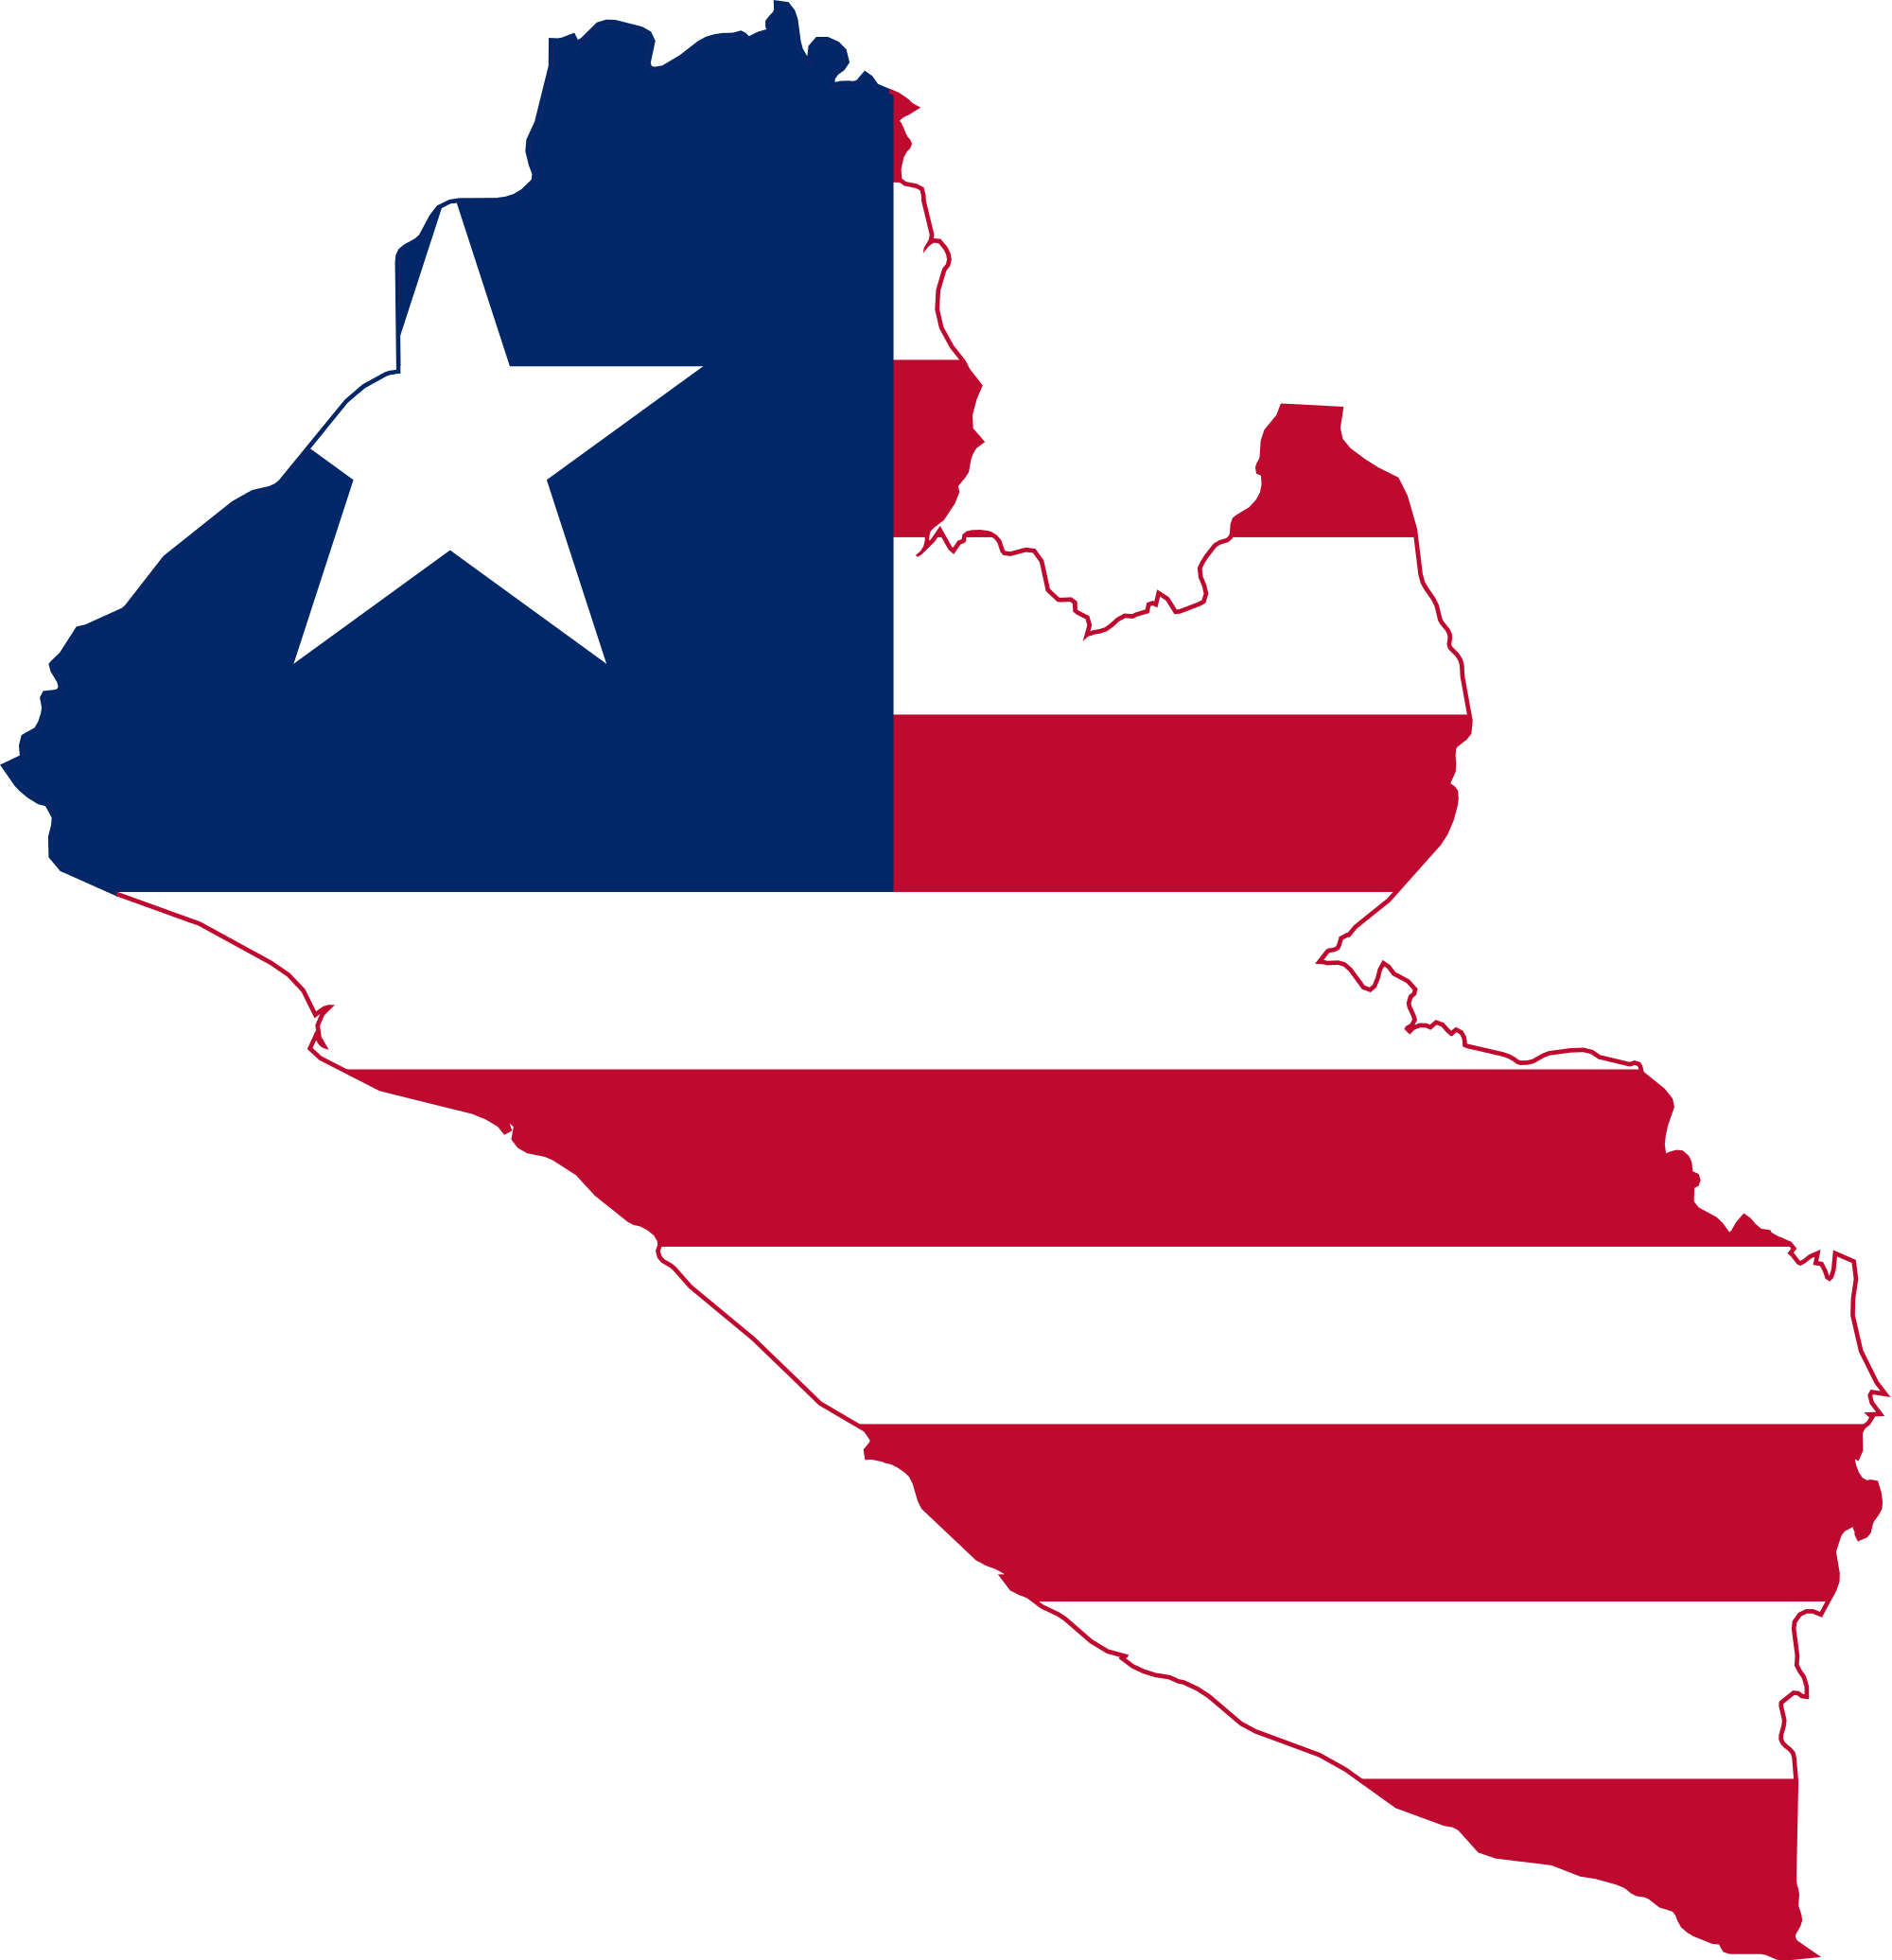 HQ Flag Of Liberia Wallpapers | File 130.88Kb